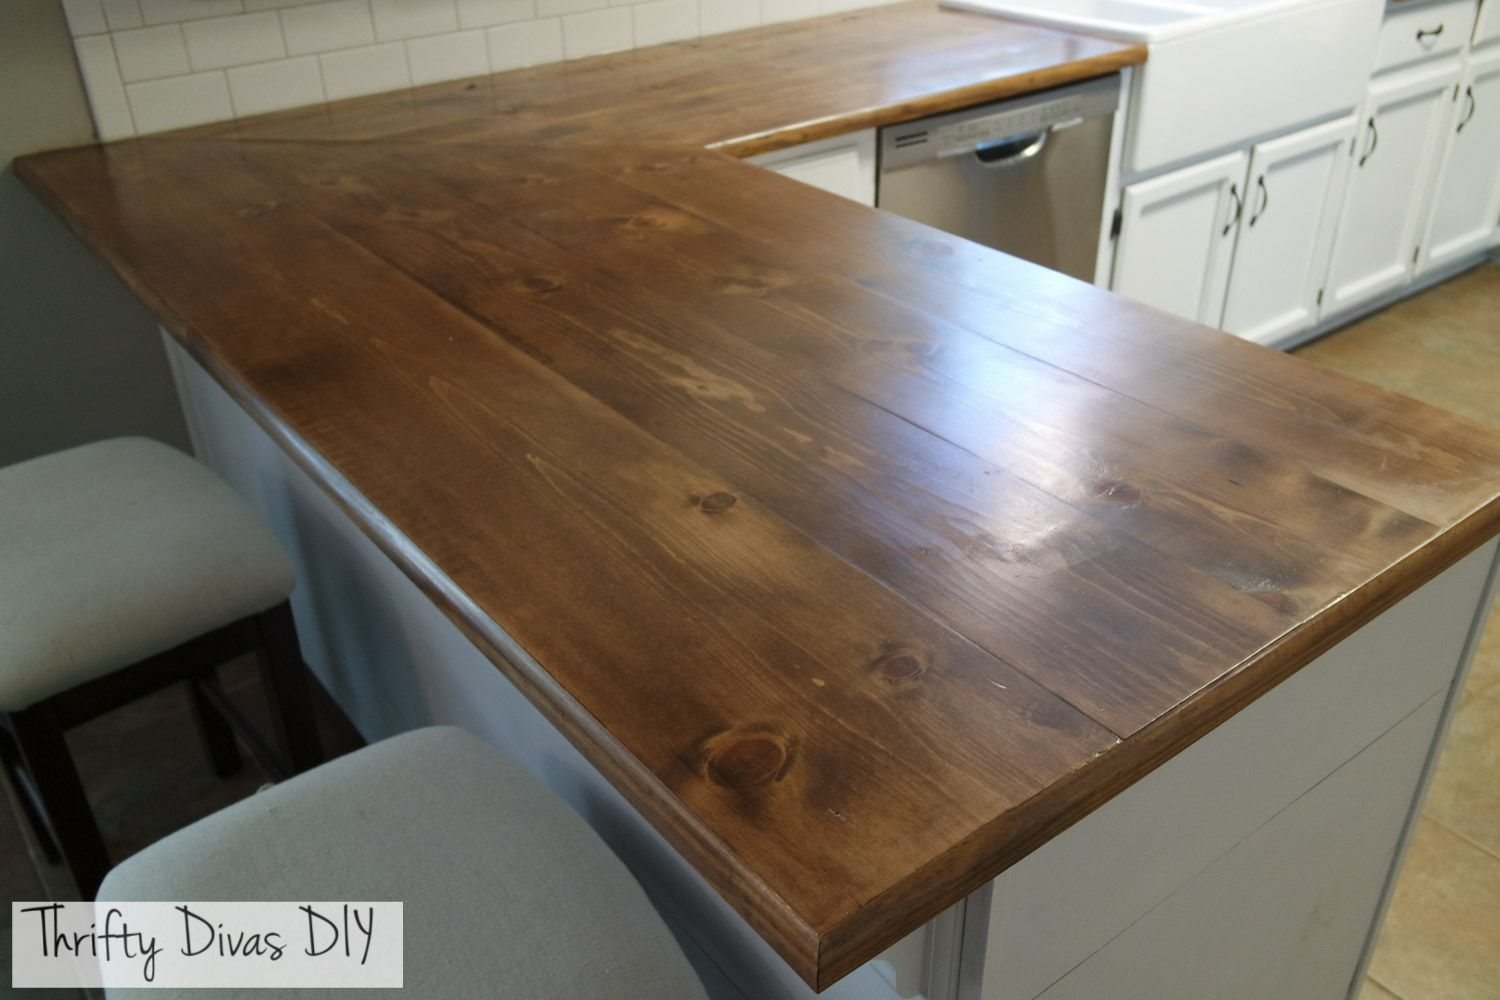 Thrifty Divas Diy Wide Plank Butcher Block Countertops Diy Countertops Diy Butcher Block Countertops Kitchen Interior